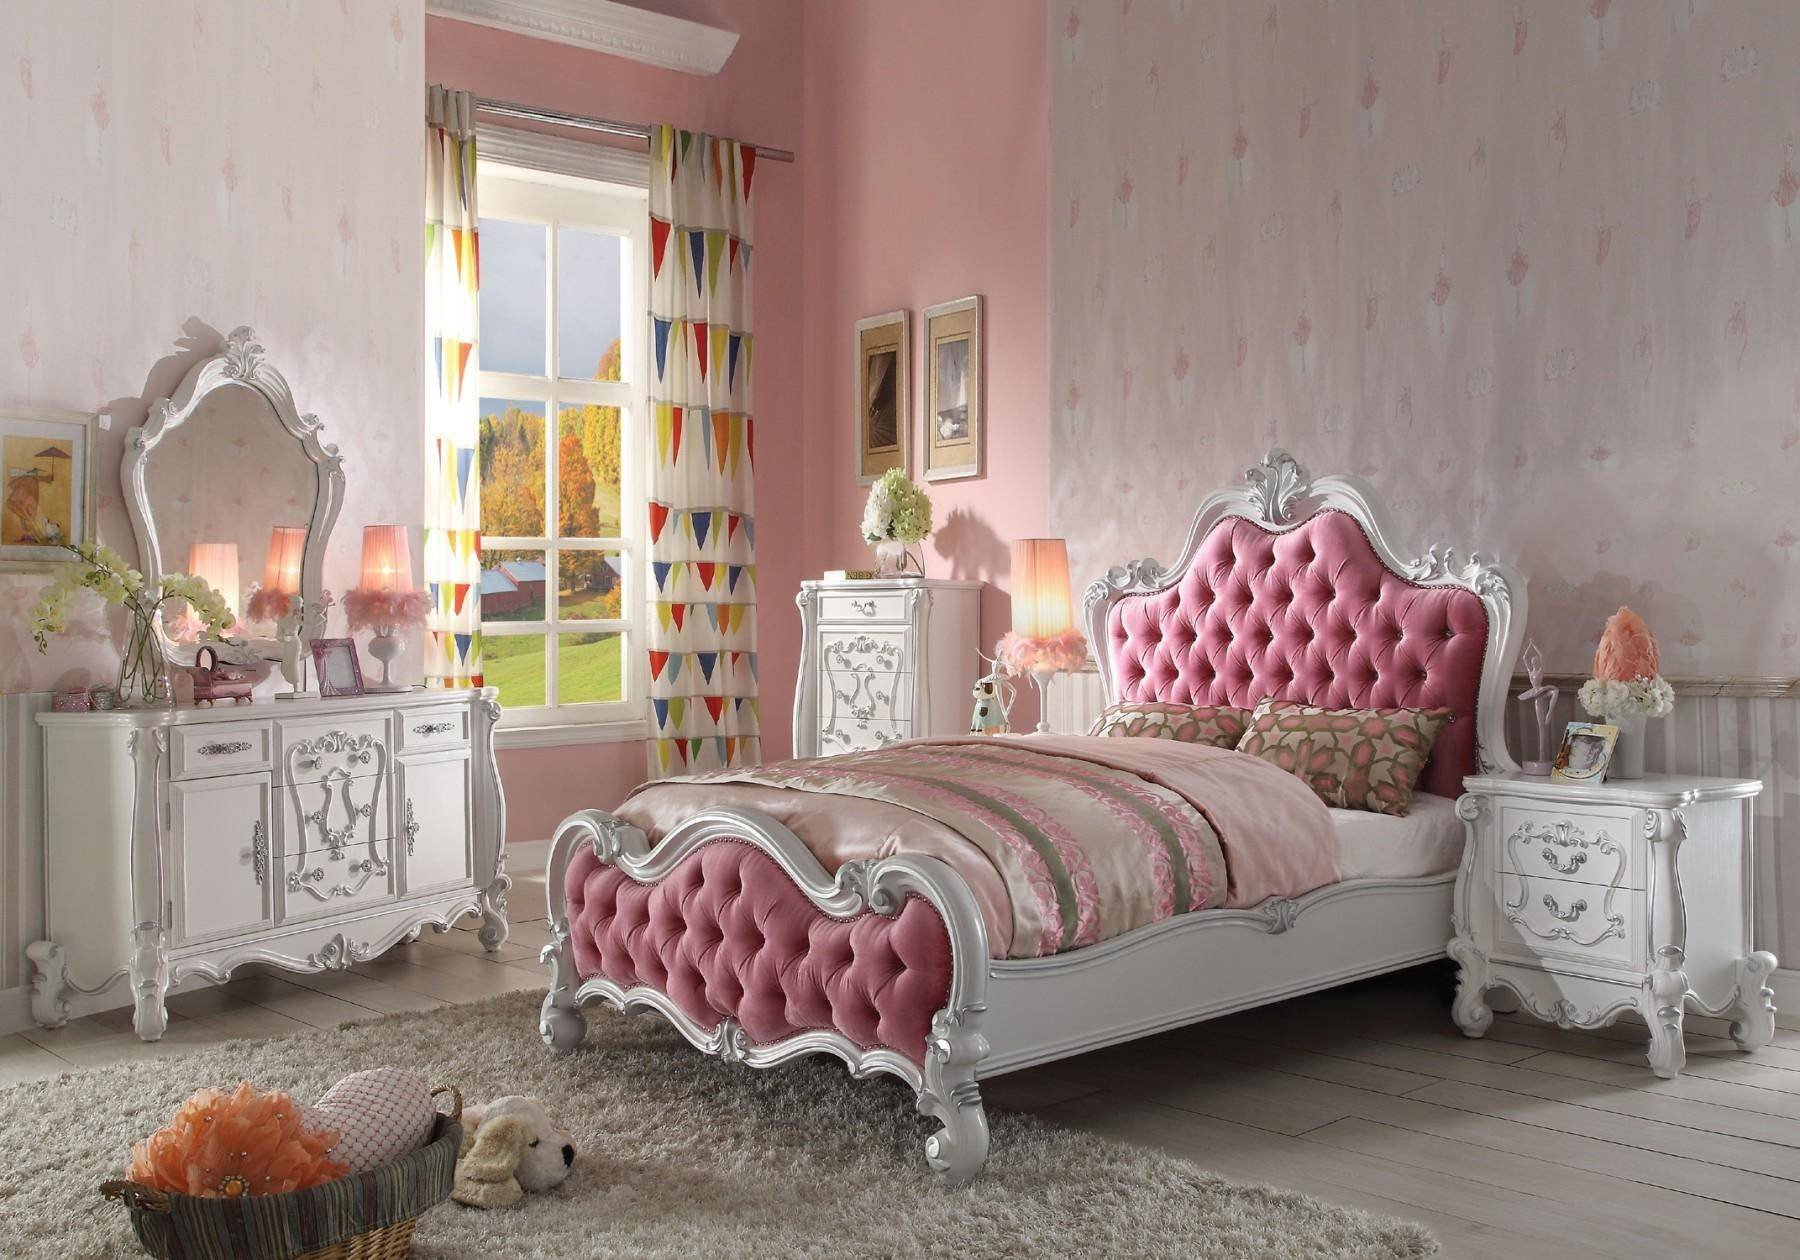 Childrens Bedroom Furniture Set Elegant soflex Classic andria Kids Queen Bedroom Set 4pcs Antique